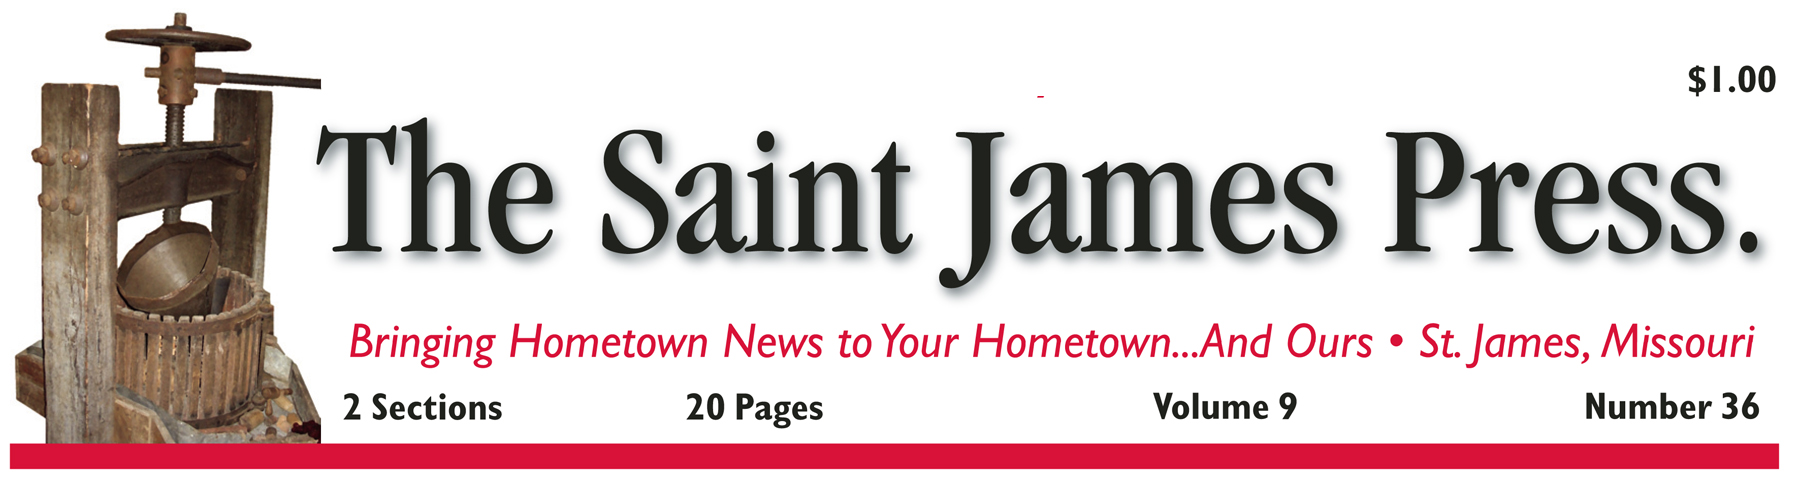 1 Year Saint James Press in Phelps and Adjoining Counties with website access